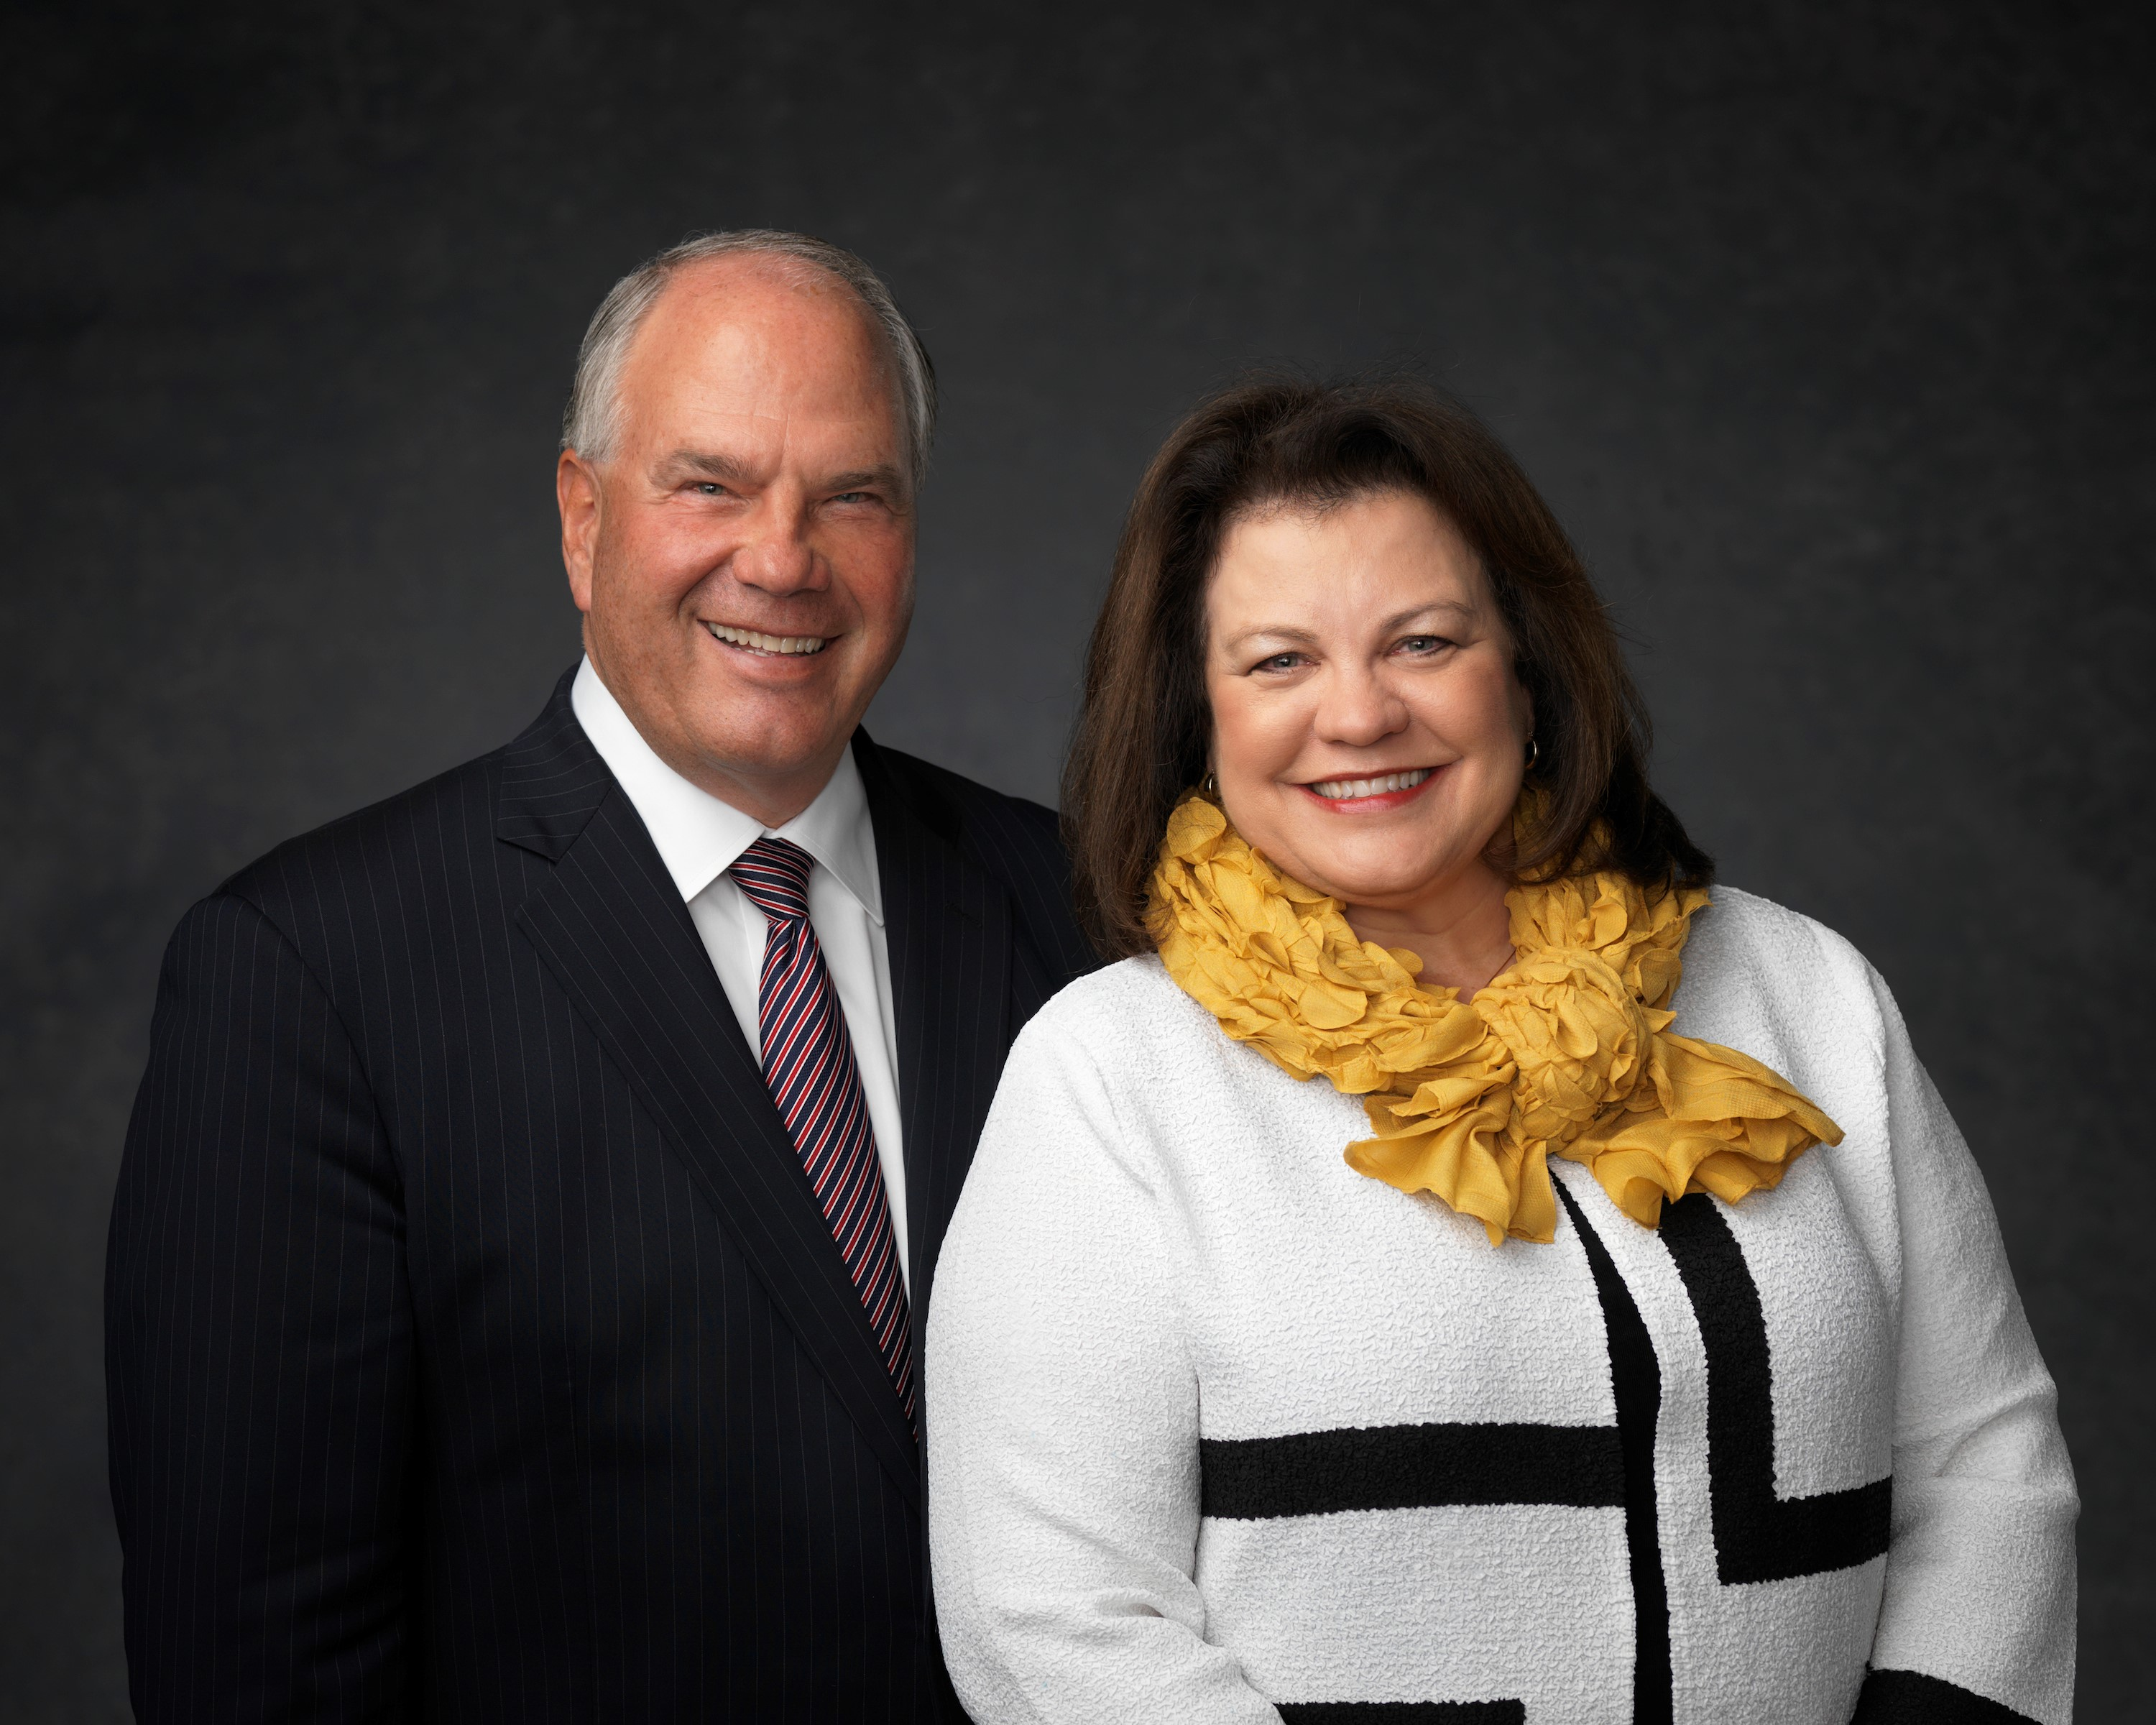 Elder Ronald A. Rasband with his wife, Sister Melanie Rasband.